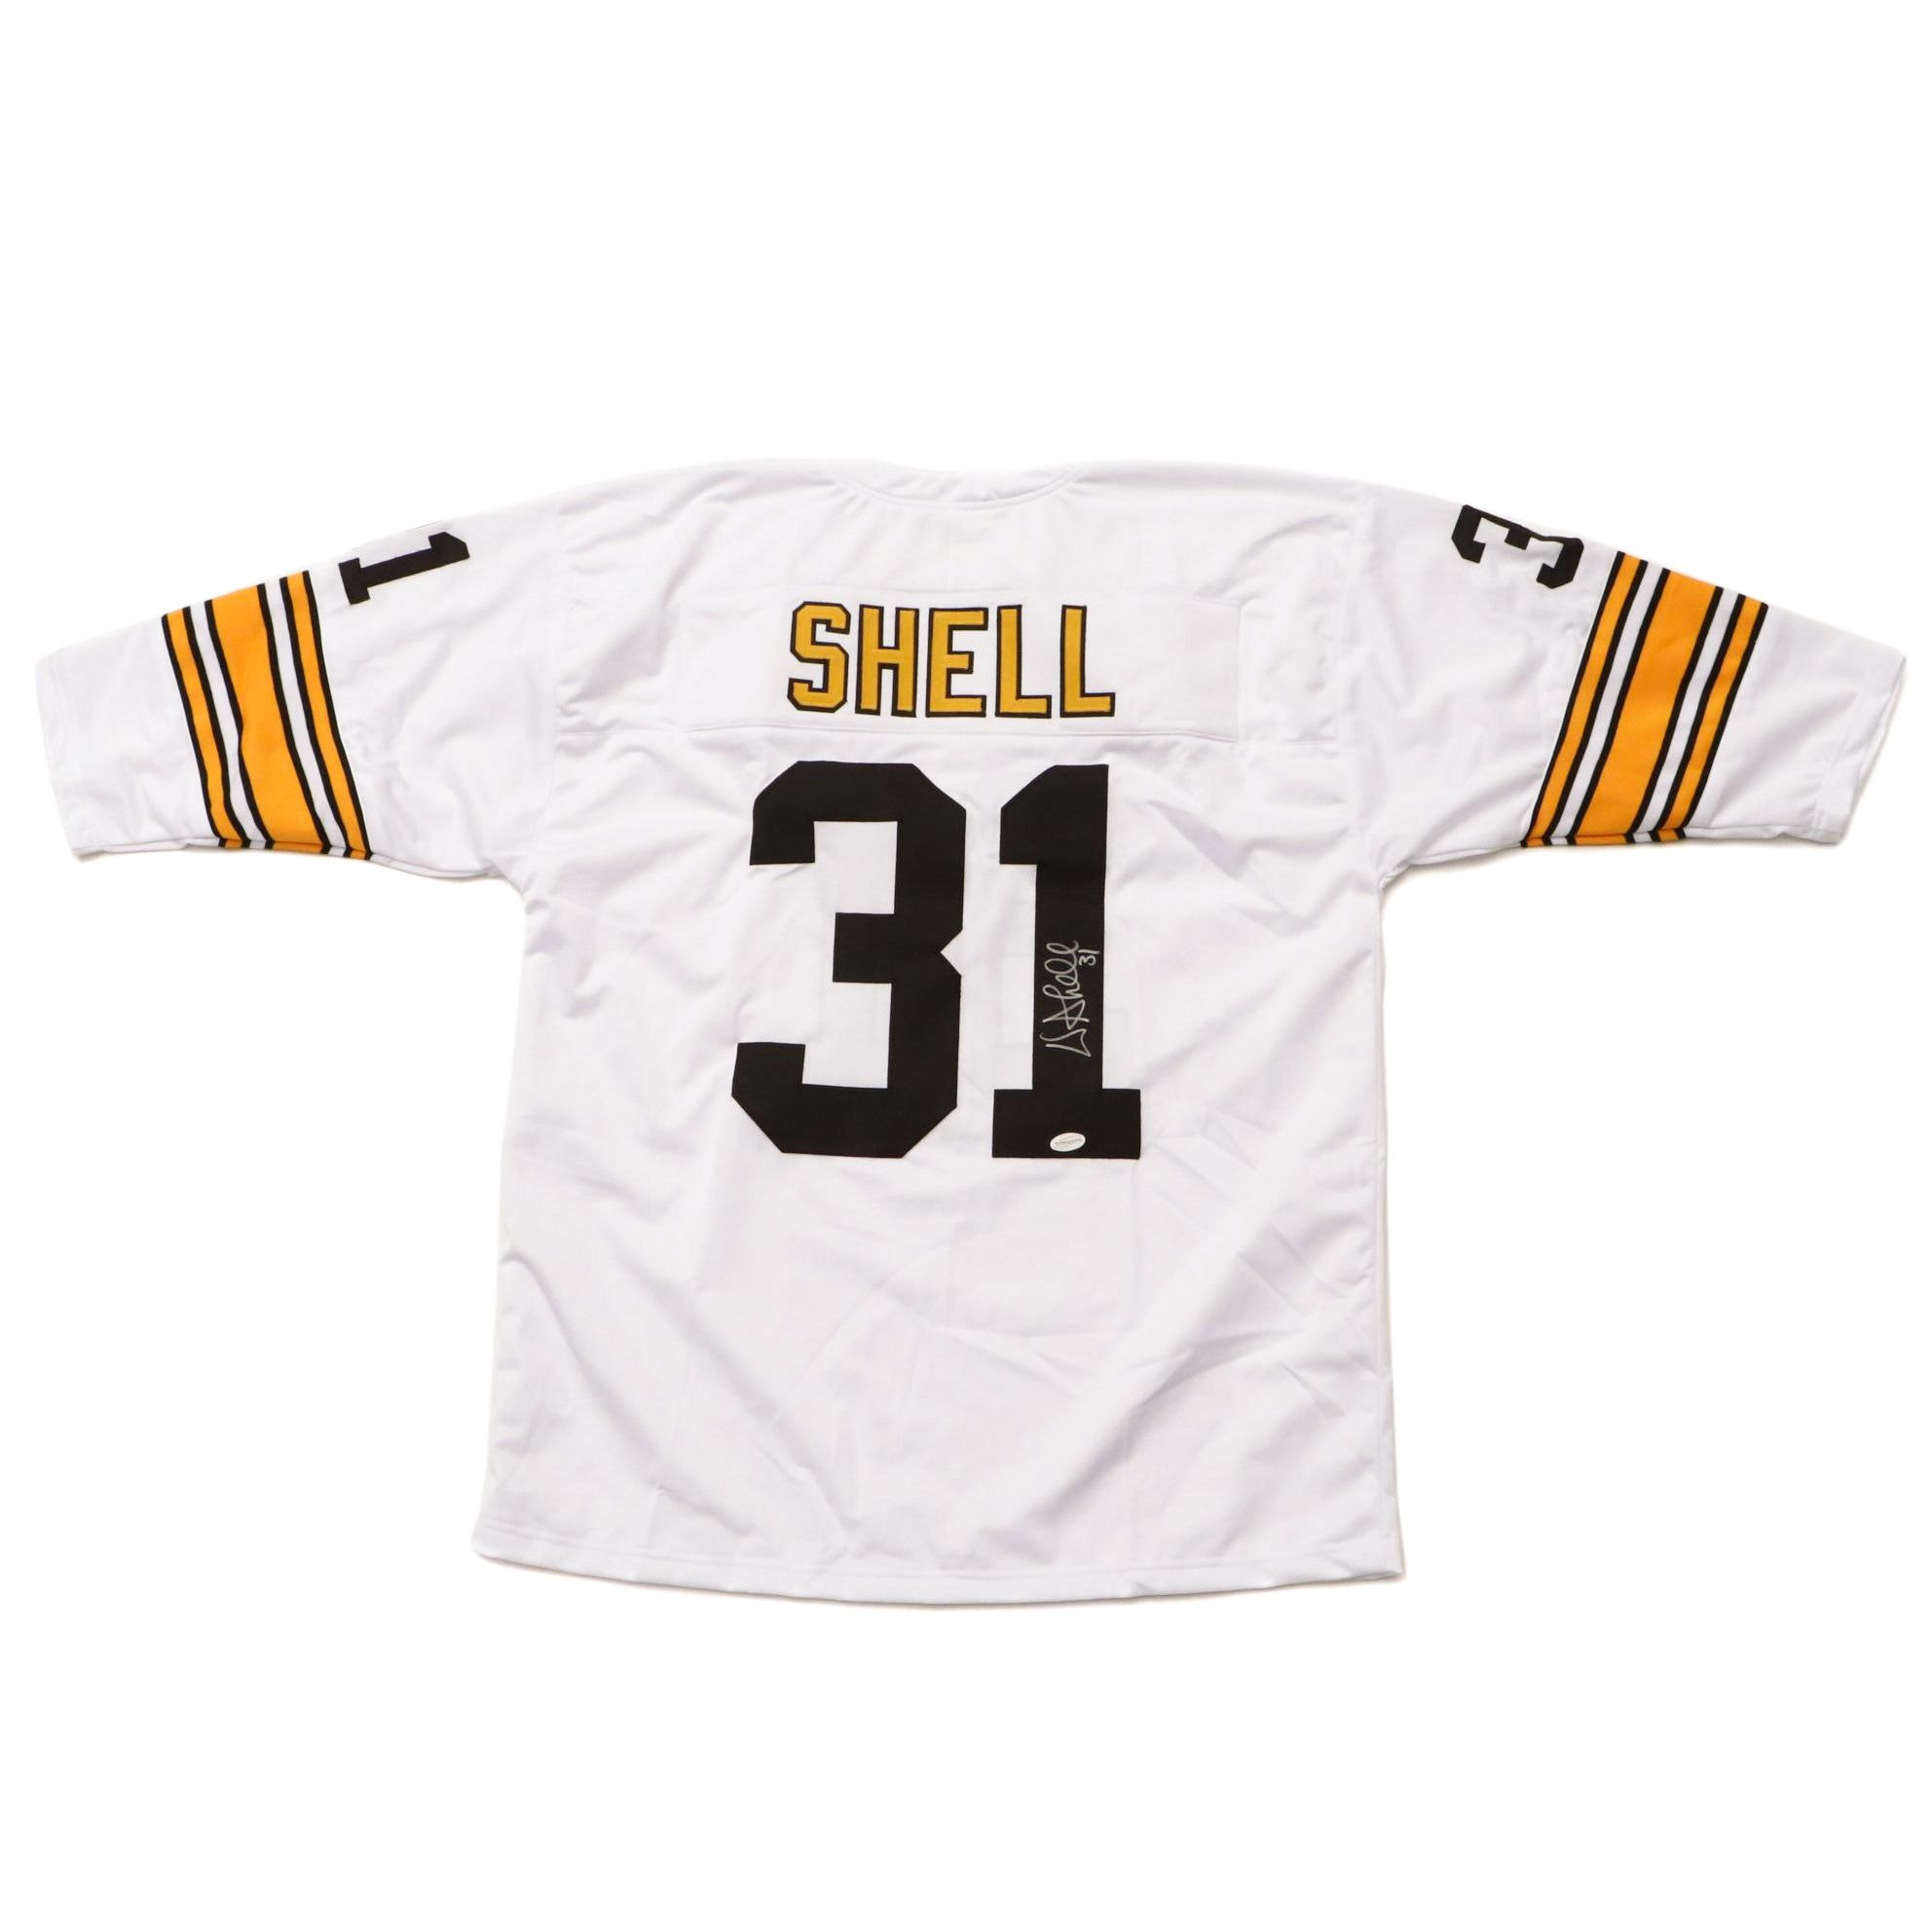 Donnie Shell Signed Steelers Jersey  COA